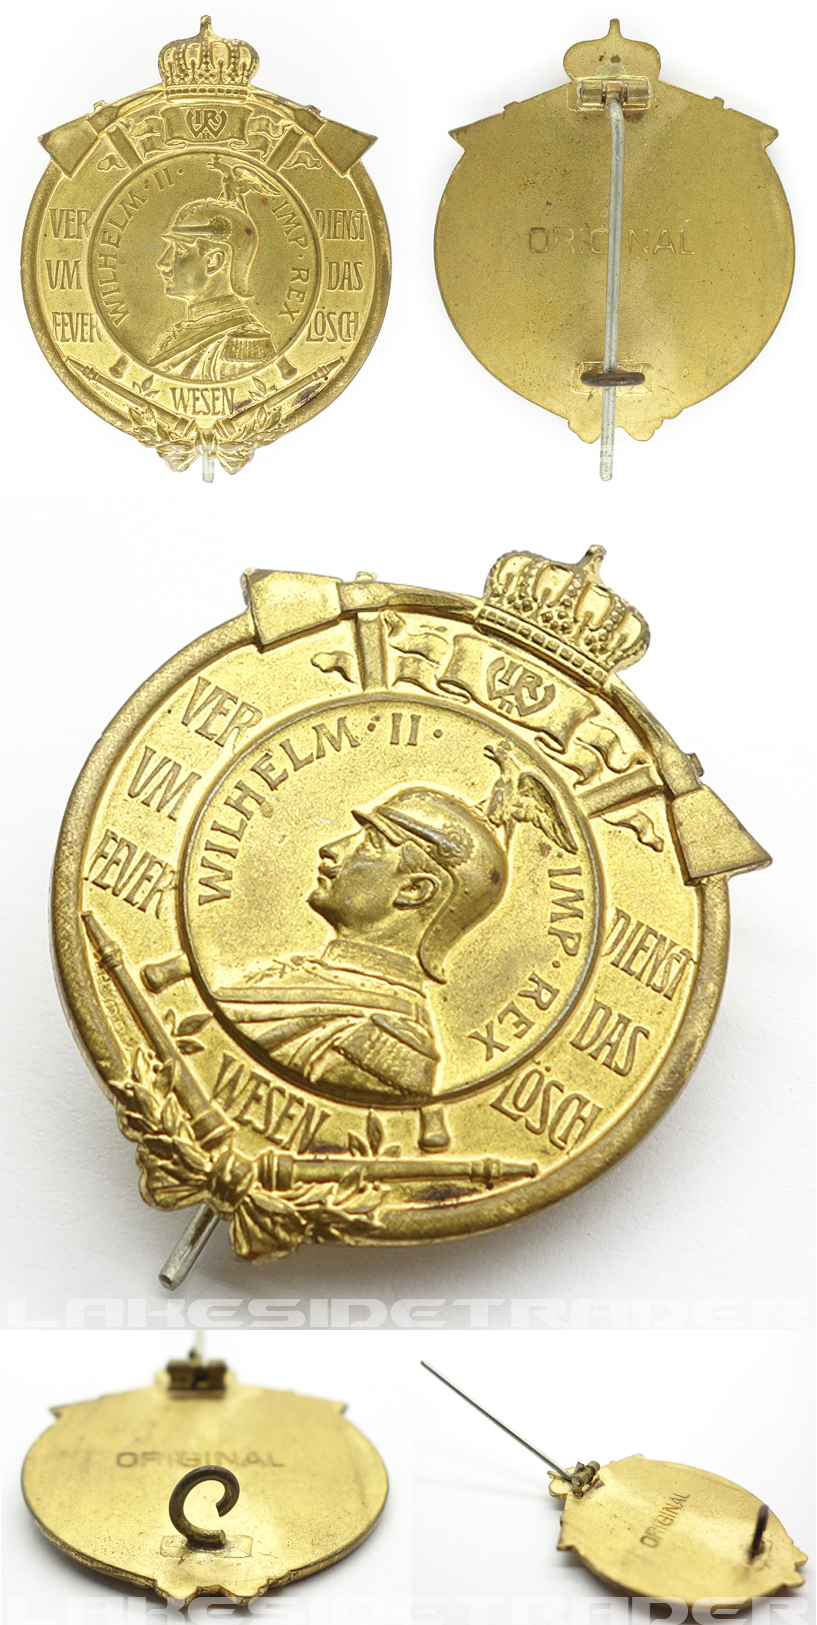 Imperial Fire Service Merit Medal